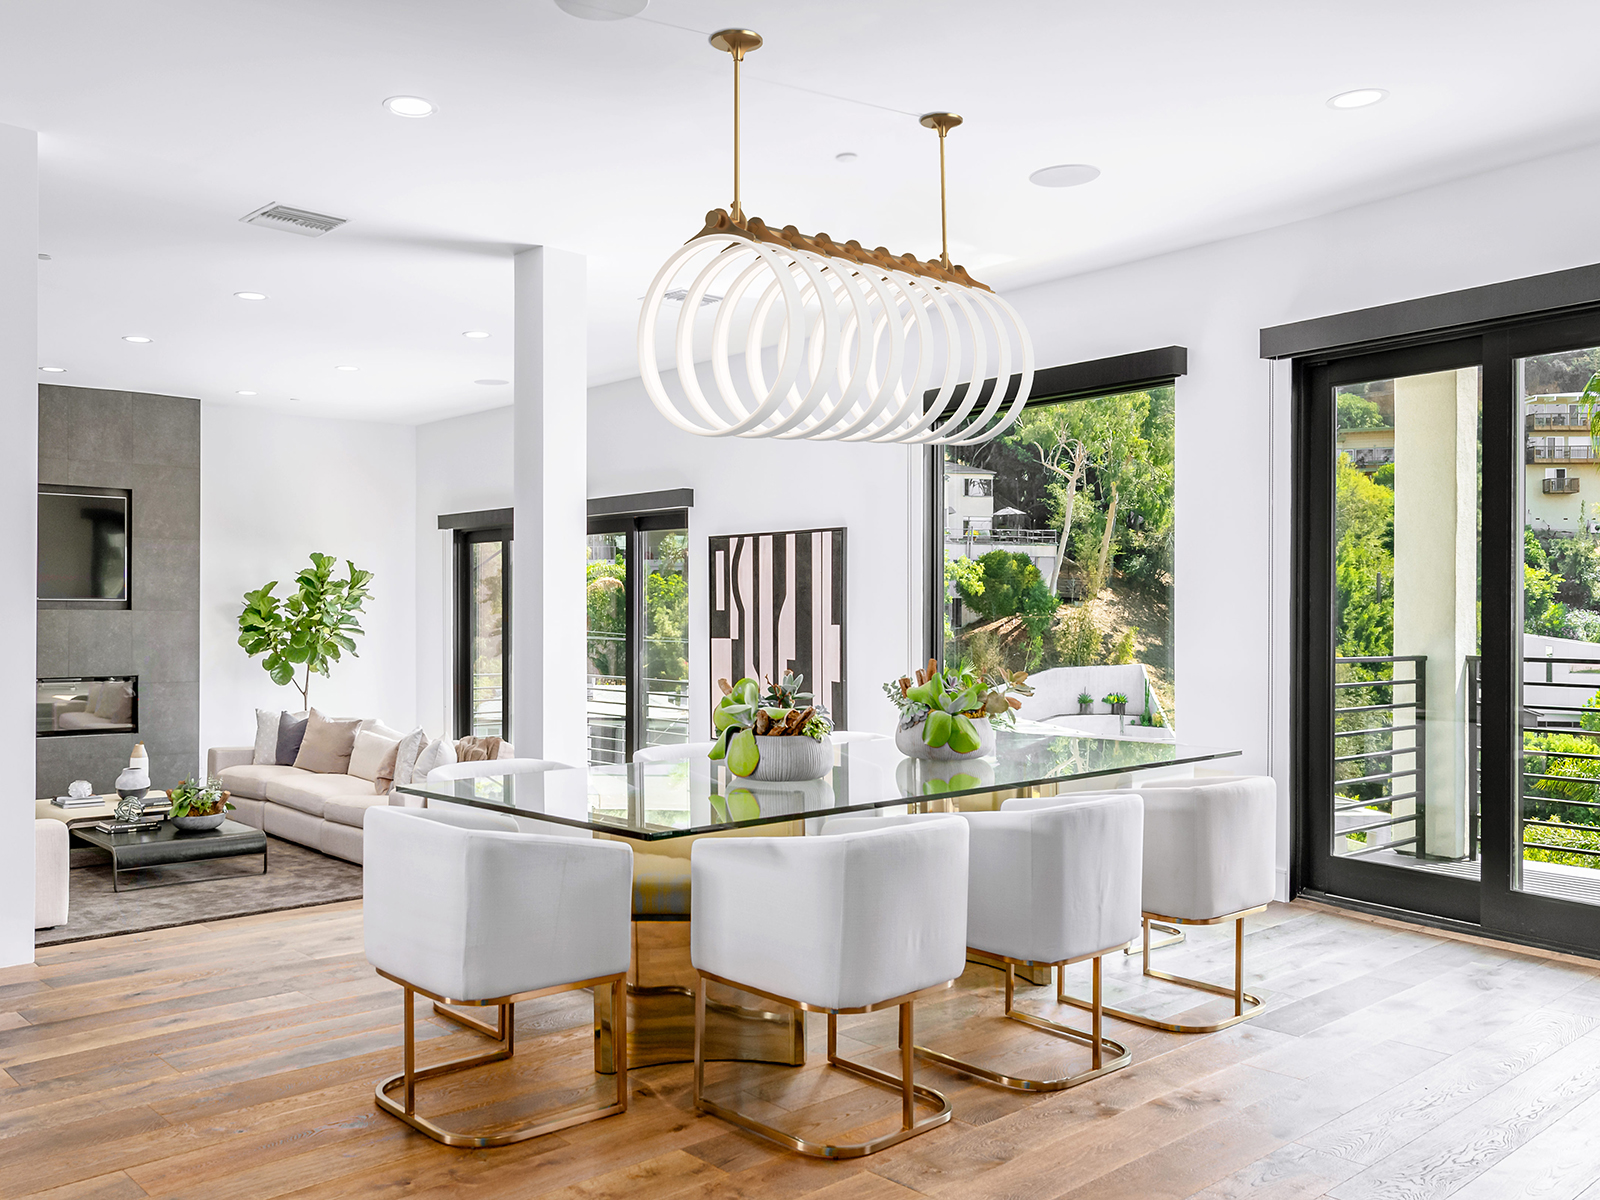 The rings of a Samsara chandelier hang over a modern dining table